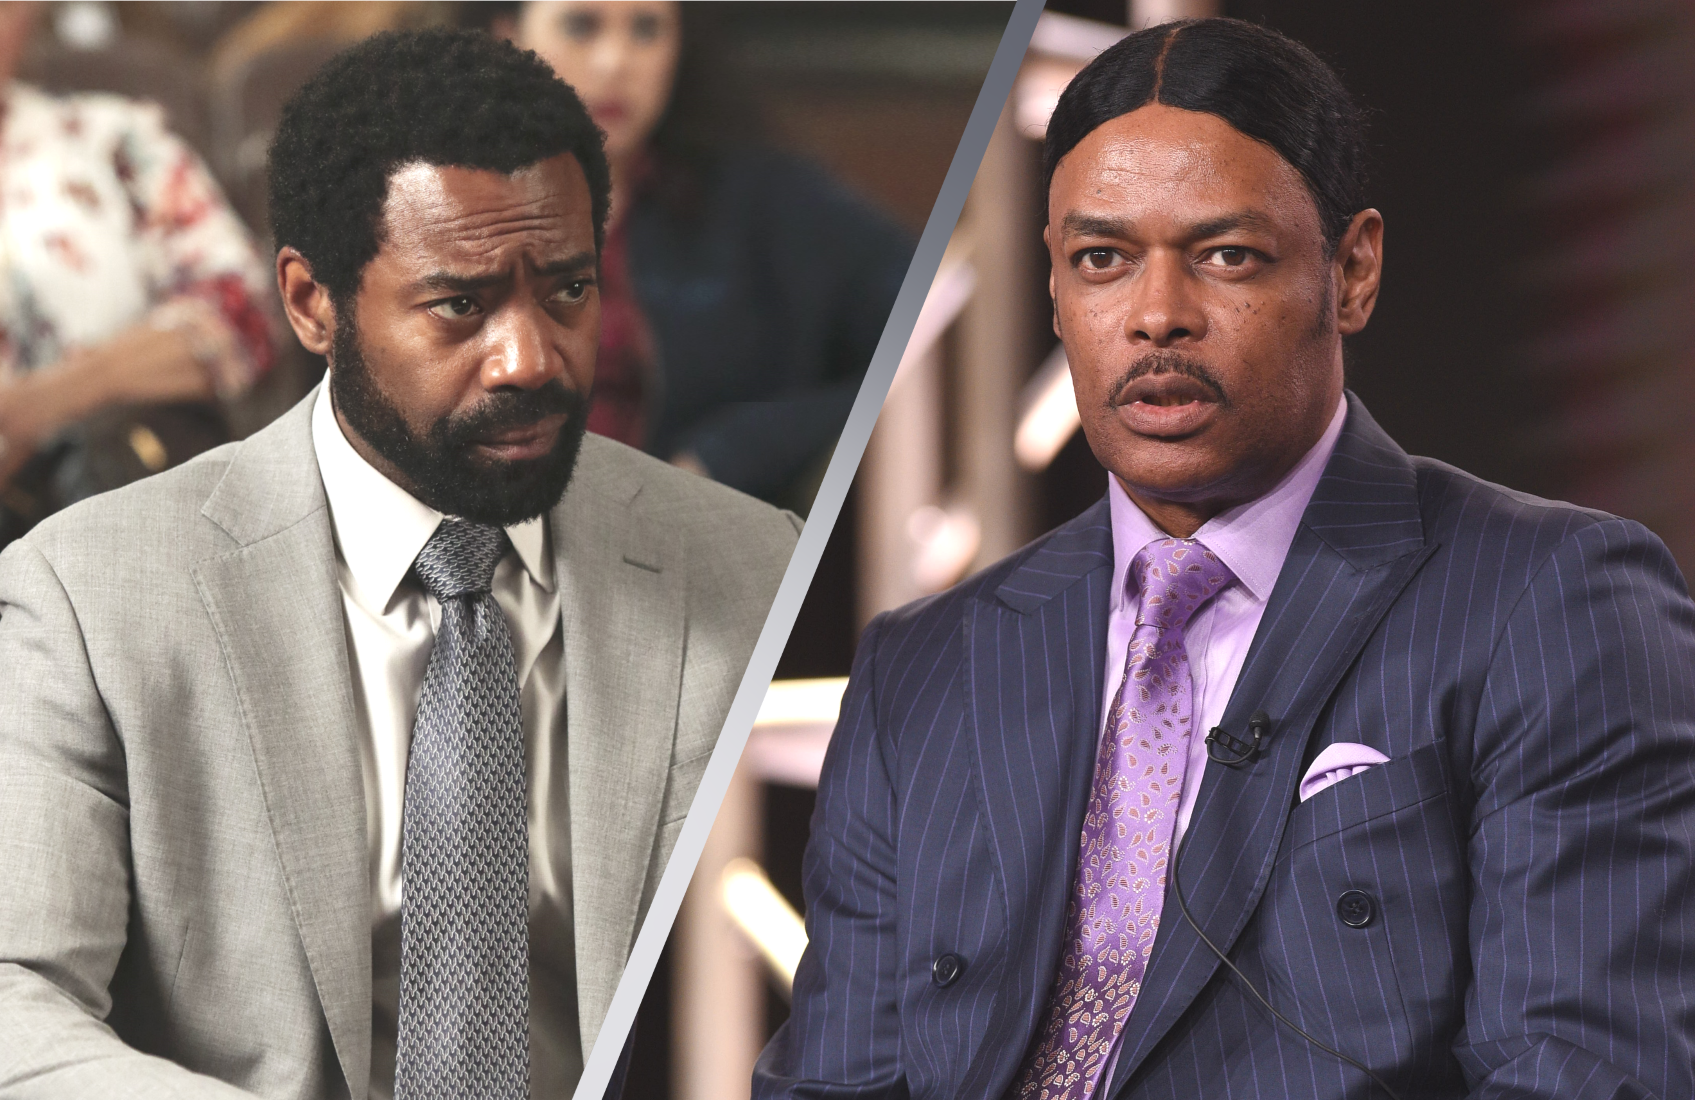 For Life's Nicholas Pinnock (left) plays a character loosely based on the life story of Isaac Wright Jr. (right). (Photos:ABC)